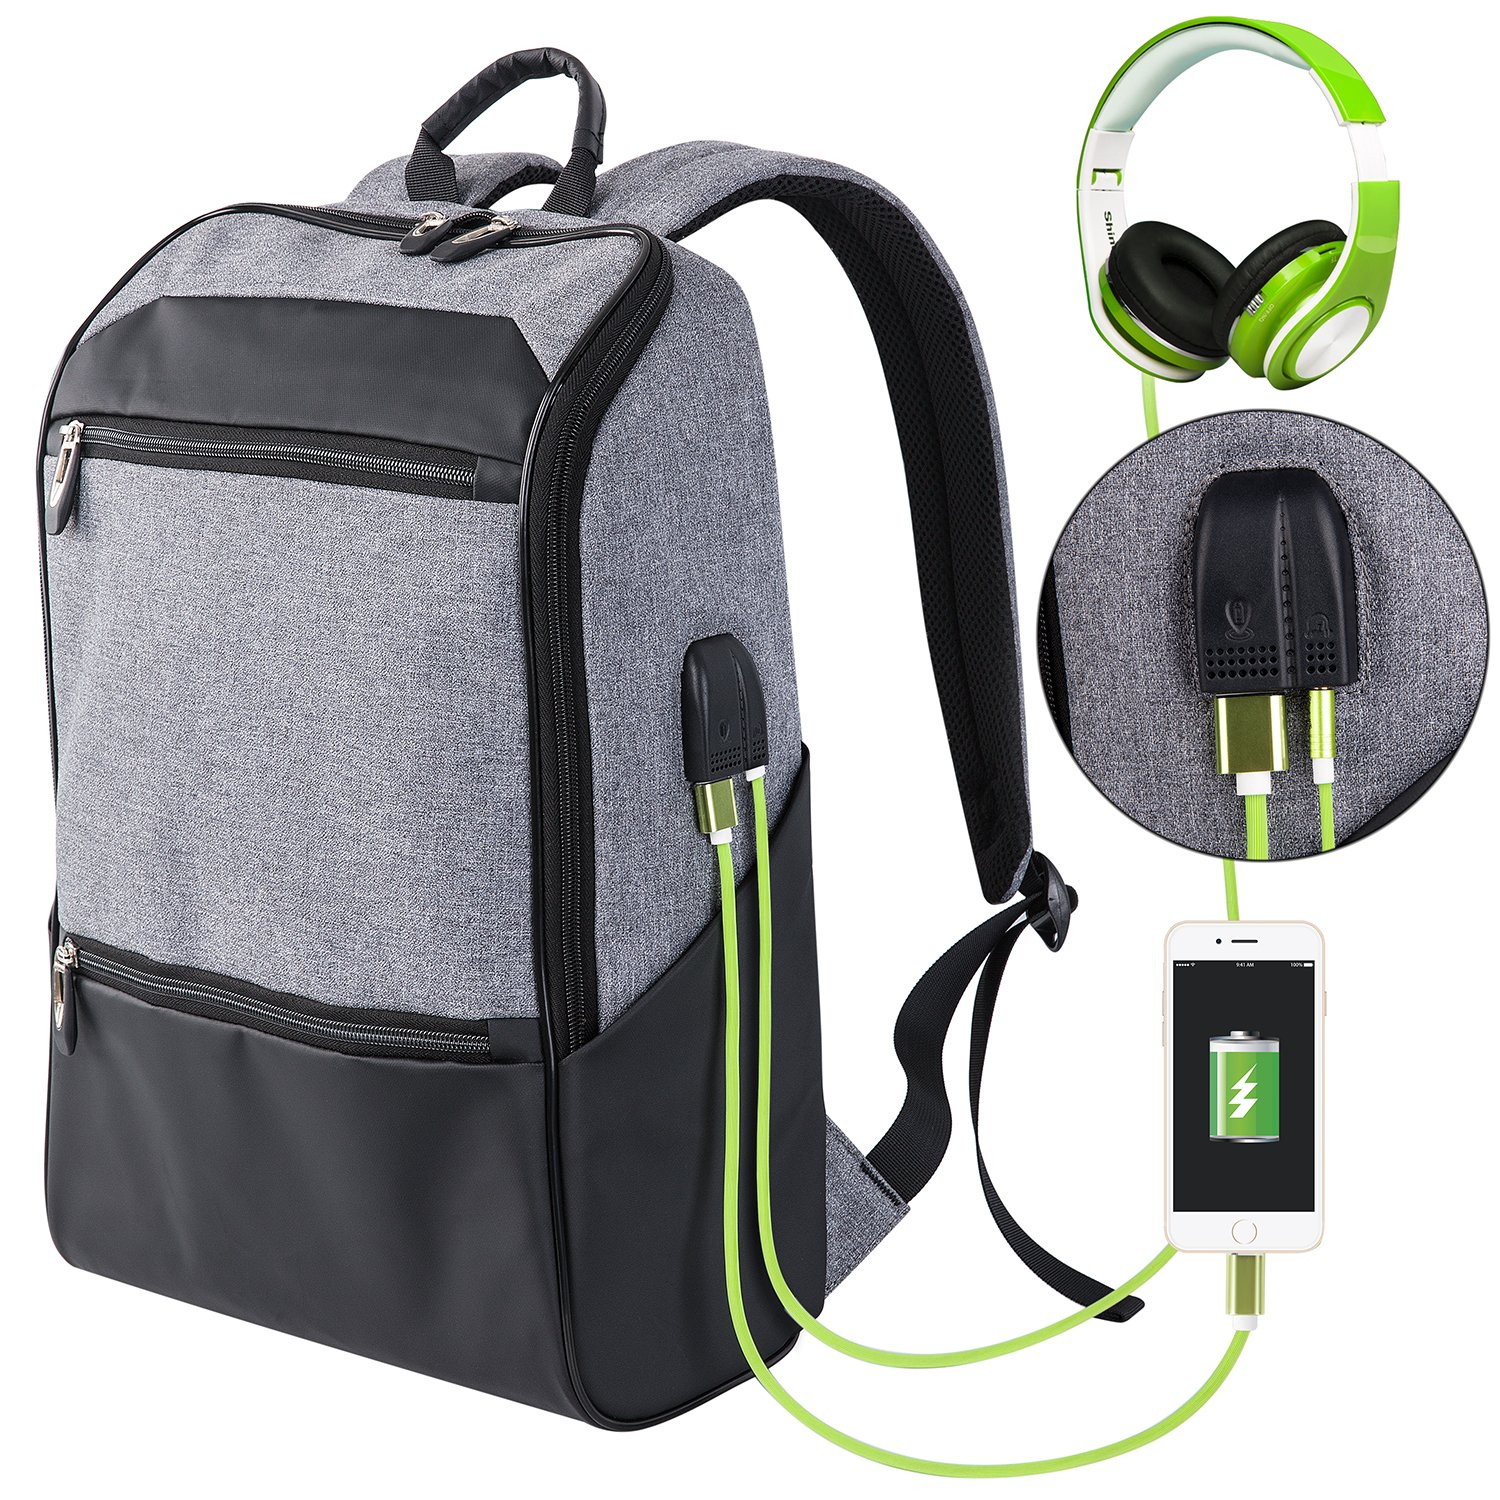 Laptop Backpack for Men & Women with Waterproof, Travel/School Backpack with USB Charging Port & Headphone Interface, Slim Business/Work Computer Bag Fit 15.6 to 17 Inches Laptop/Notebook / DSLR